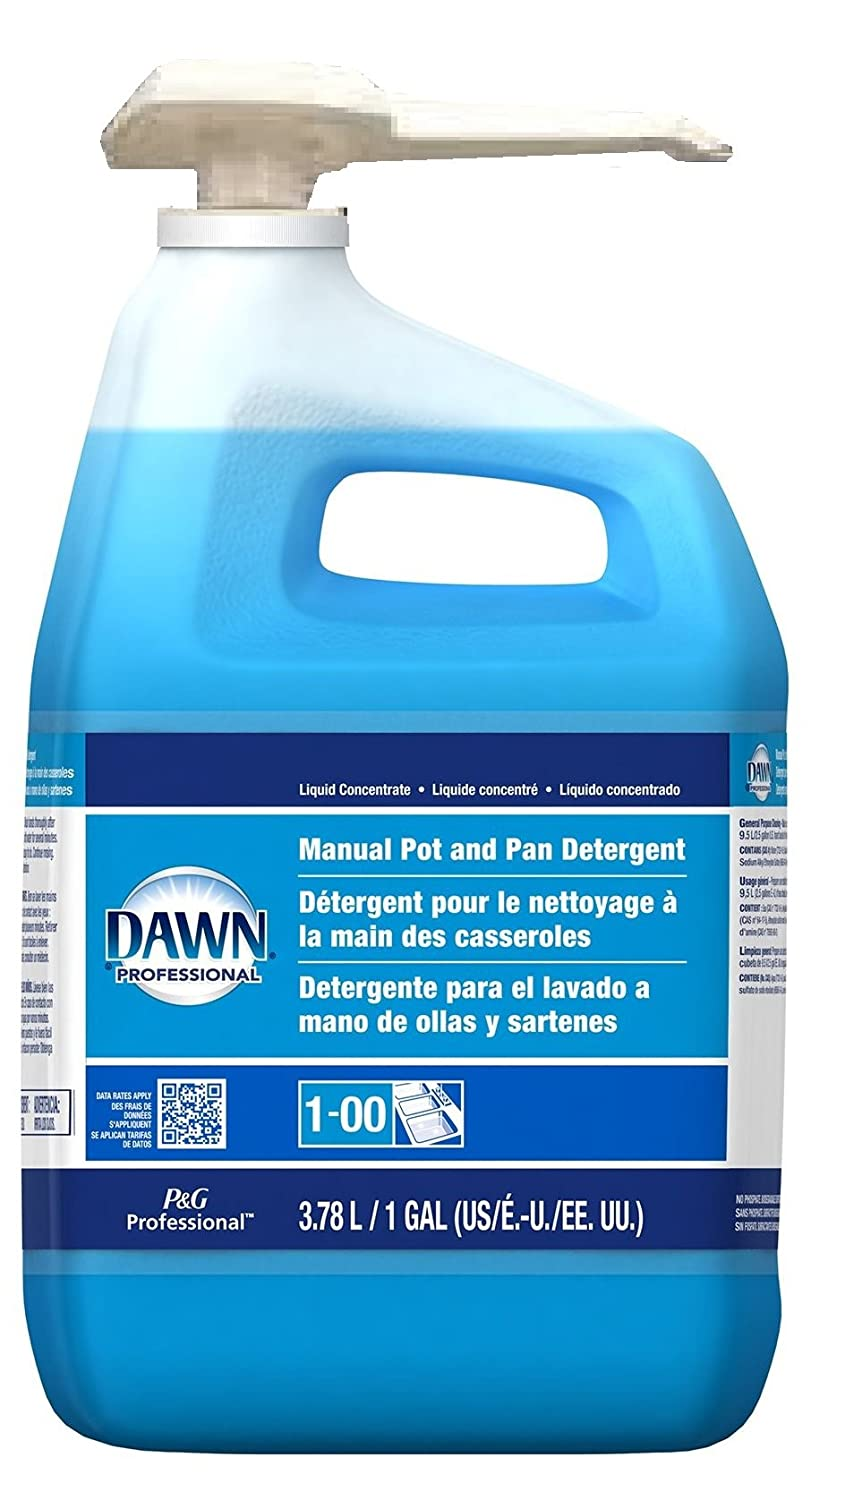 Amazon.com: Dawn Ultra, Professional Dish Detergent Liquid – Plus 2 Scrub sponges - Cuts Tough Grease - Original Scent - Blue, - With Pump Dispenser - (128 ...